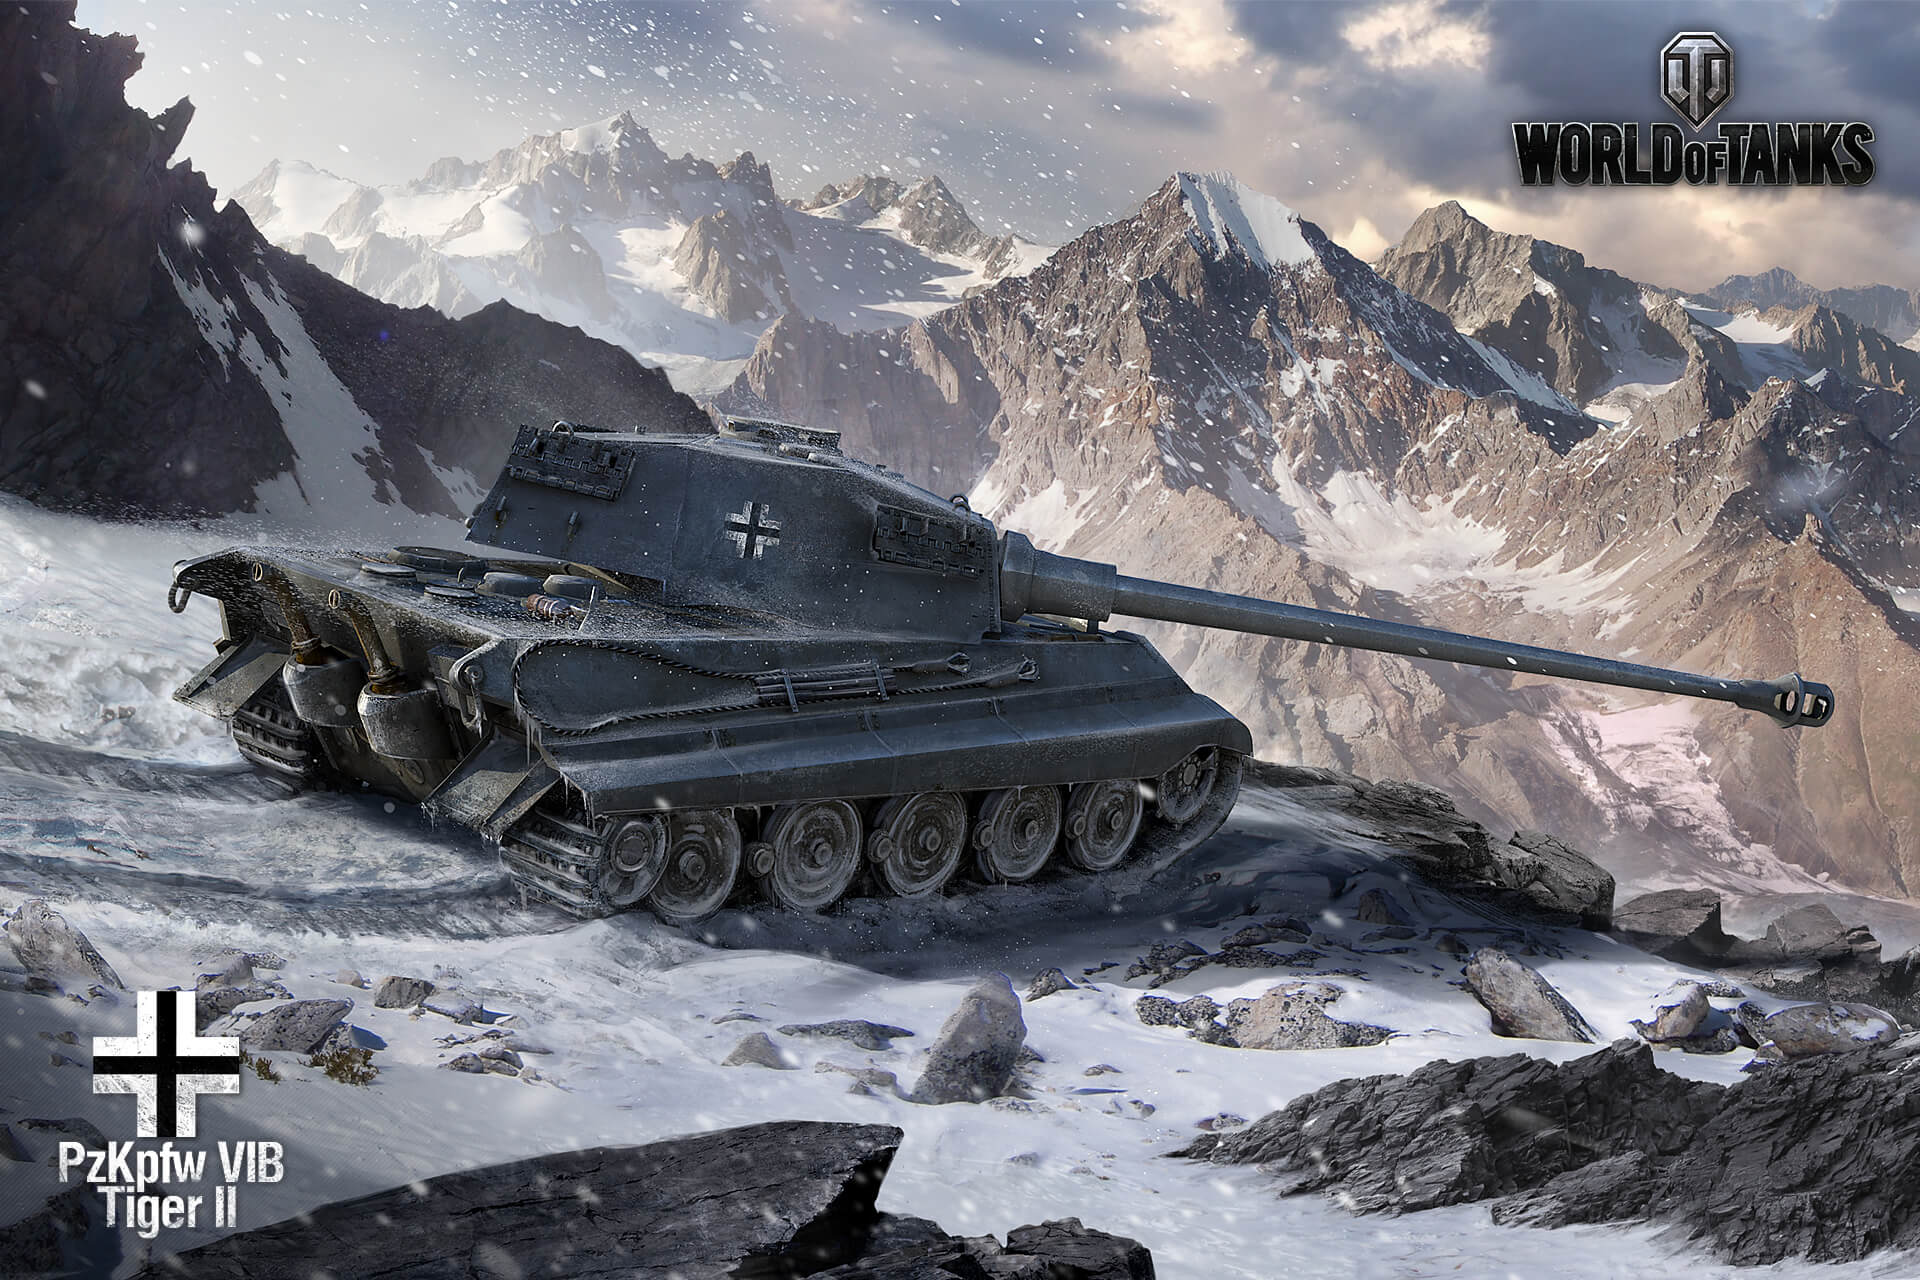 http://worldoftanks.ru/dcont/fb//media/tiger2wall/1920_1280.jpg